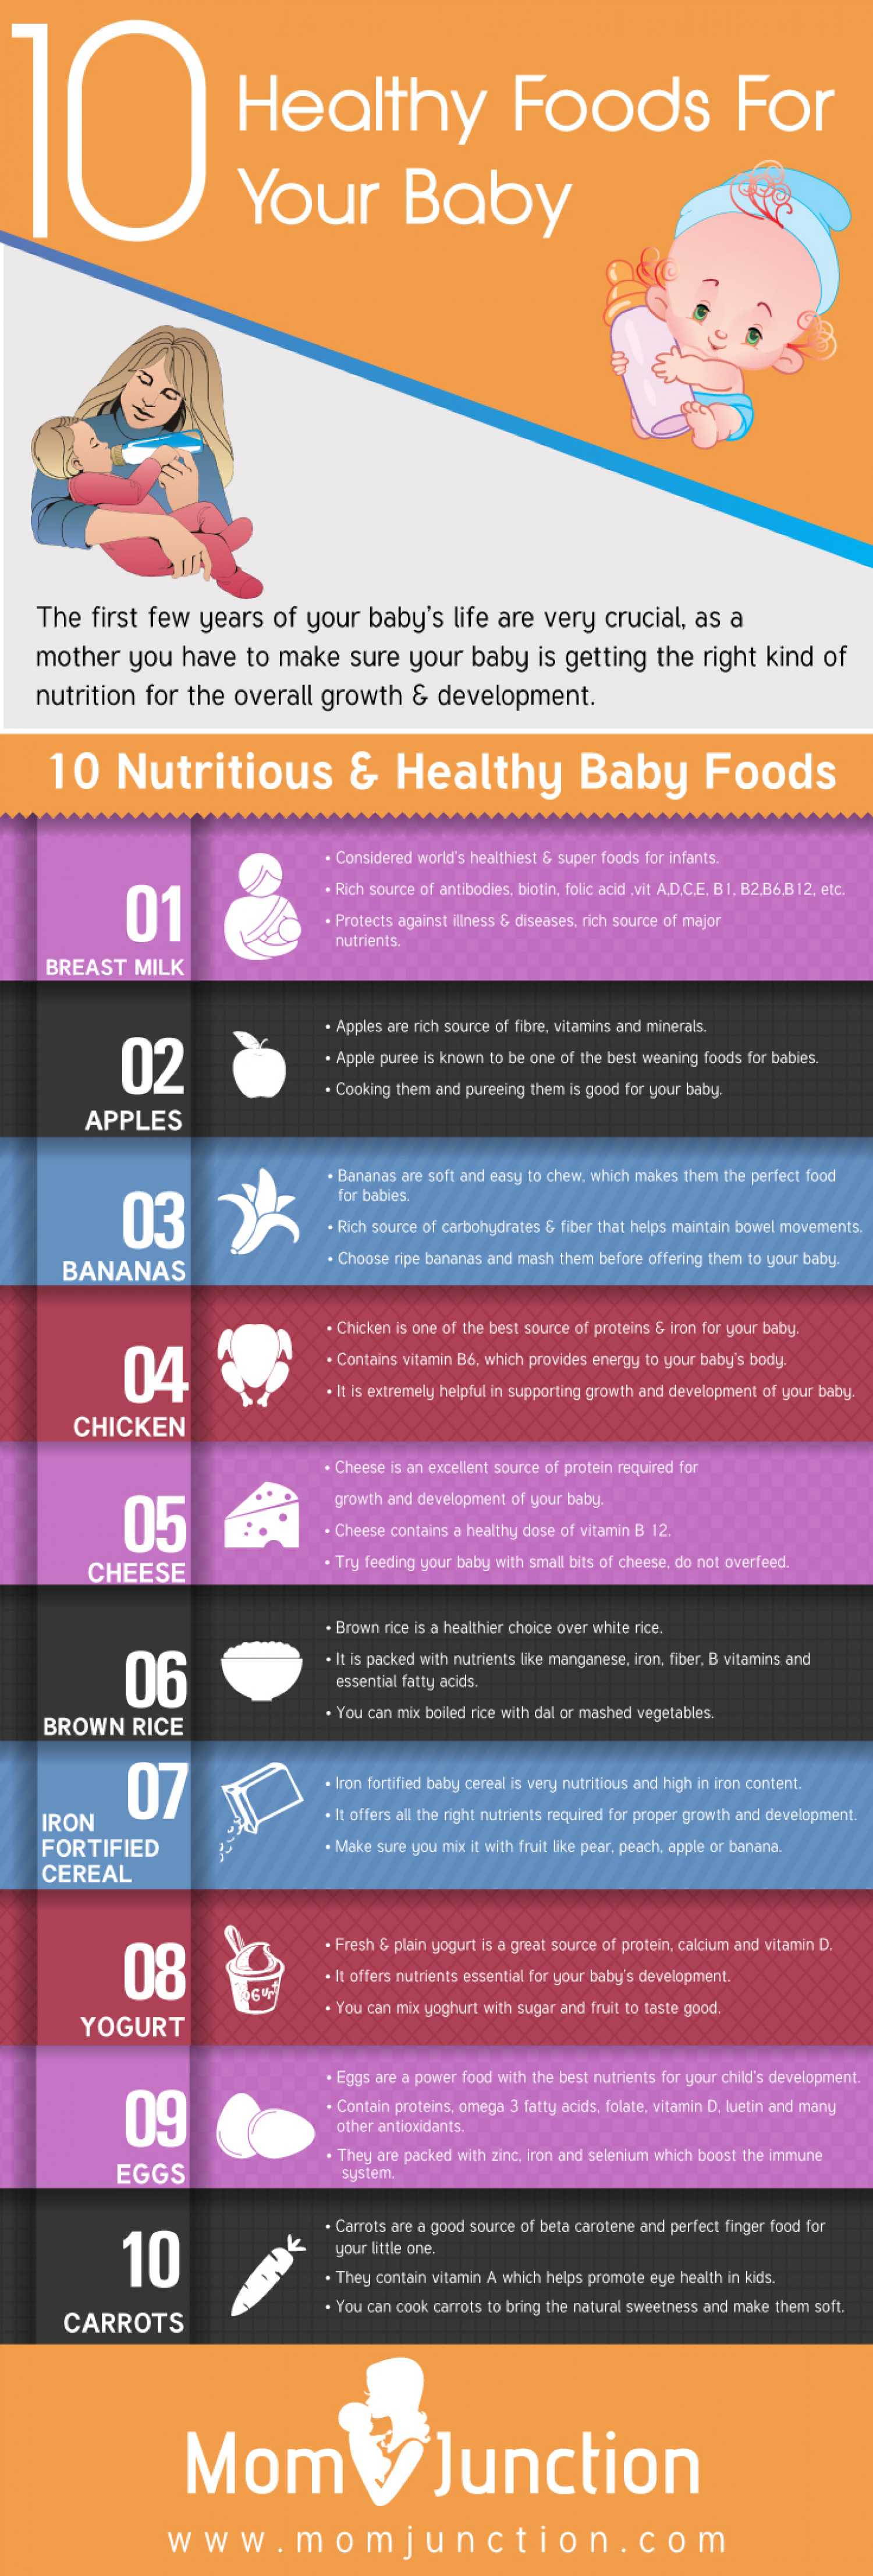 Top 30 Healthy Foods For Baby | Visual ly